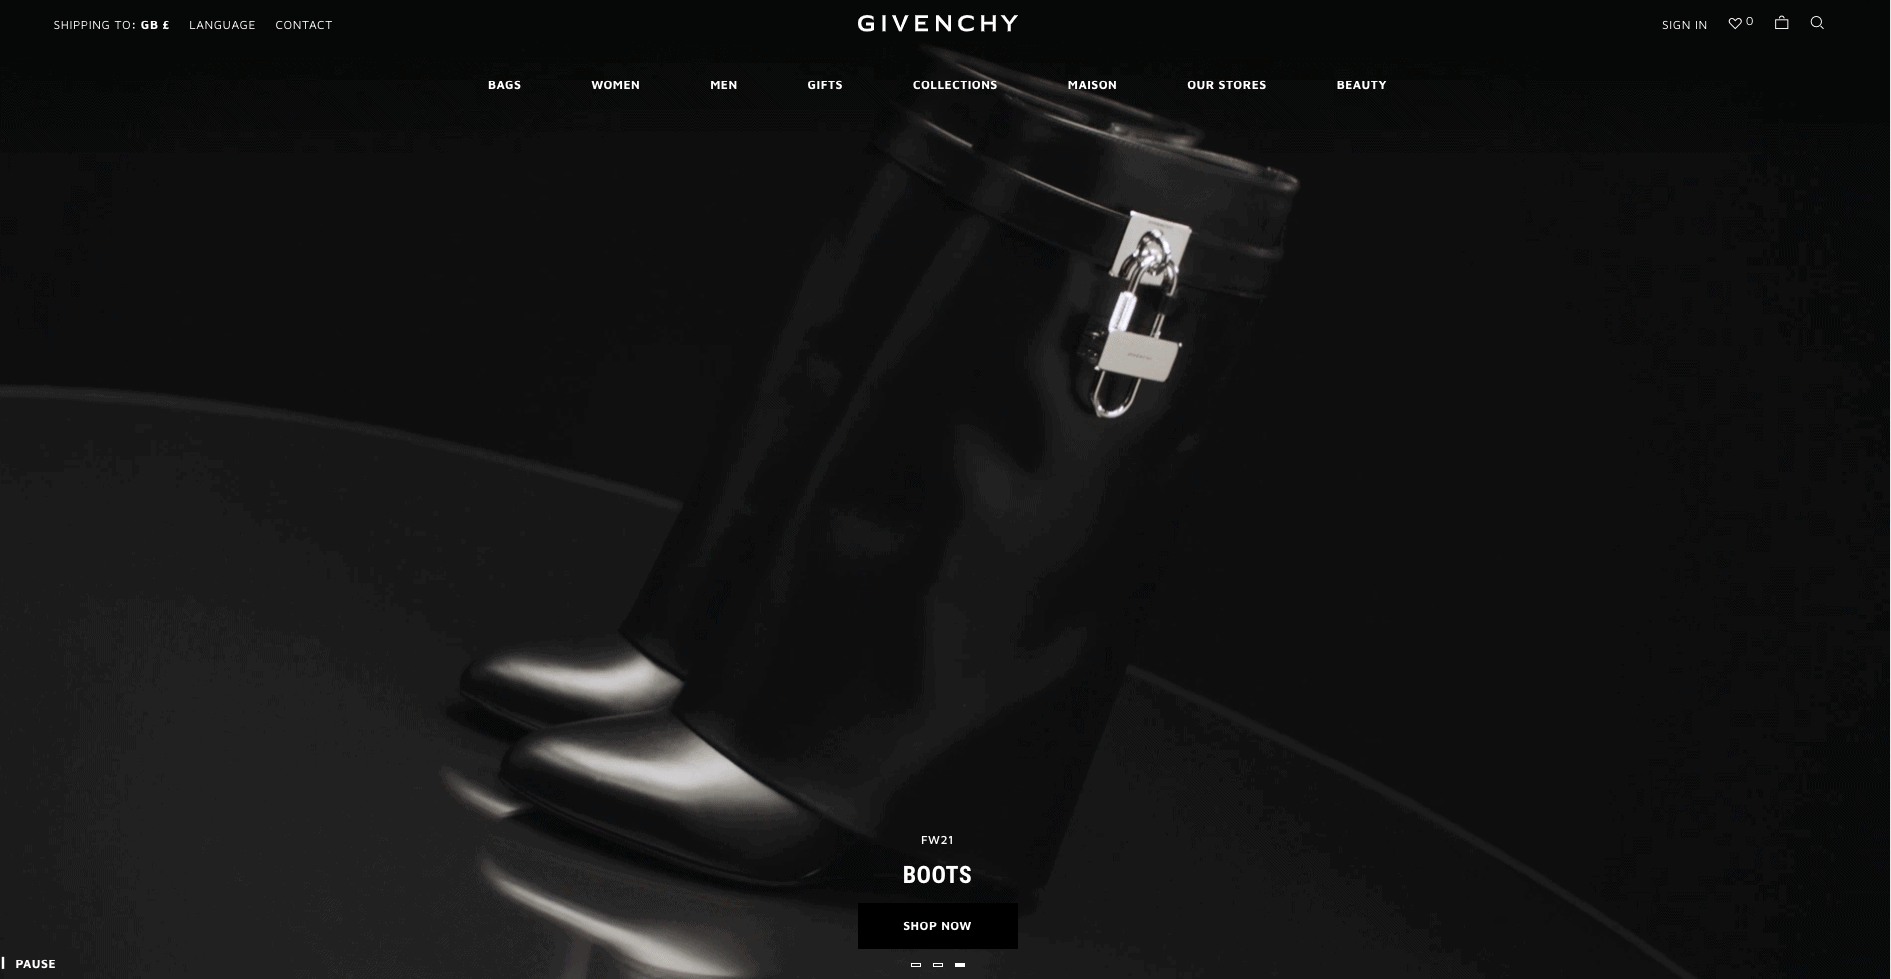 The Givenchy home page. Most of the page is taken up by white space in the form of a photograph of a pair of boots. There is a simple navigation bar at the top of the page with white text on a black background.